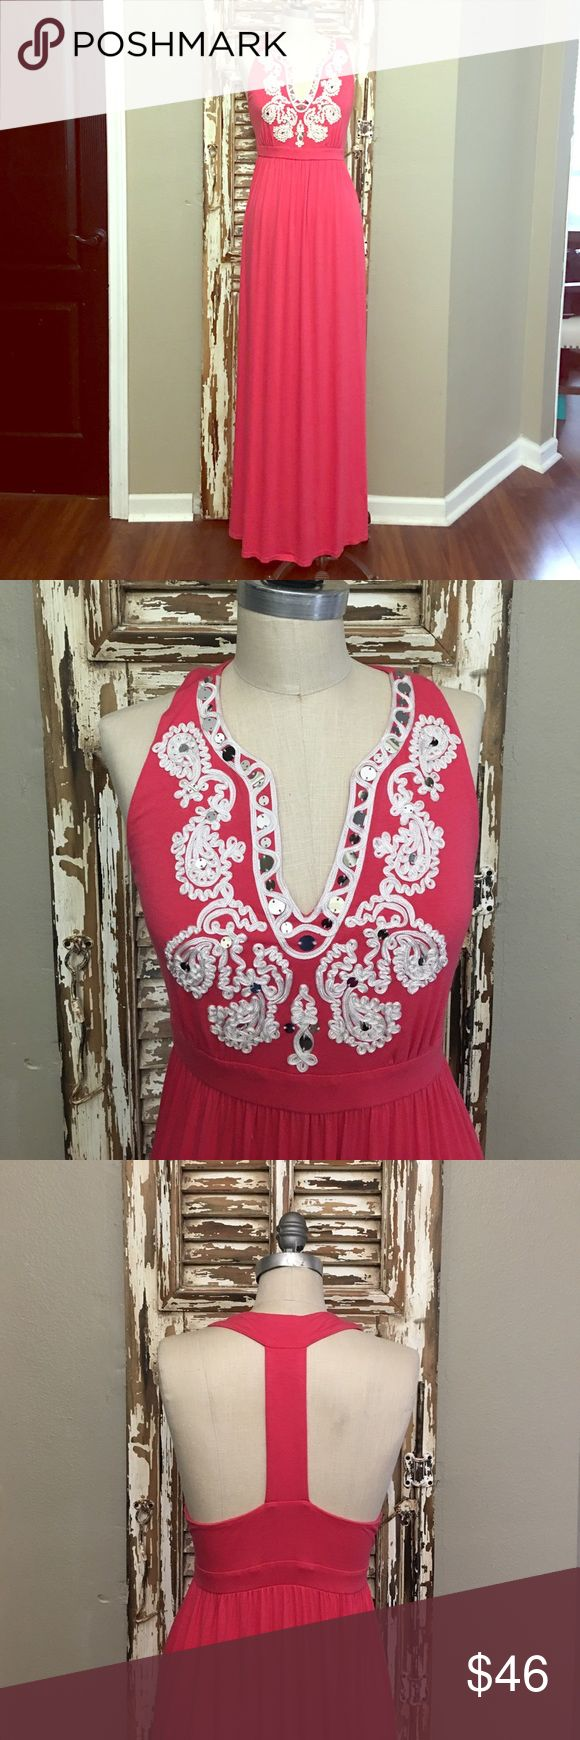 INC Maxi Dress Gorgeous coral/pink maxi dress with nylon embroidery with silver mirrored sequins. Dress is 95% Rayon & 5% Spandex. Full length from back neckline to hem of dress is 58 inches long. Gently used and in excellent condition! INC International Concepts Dresses Maxi